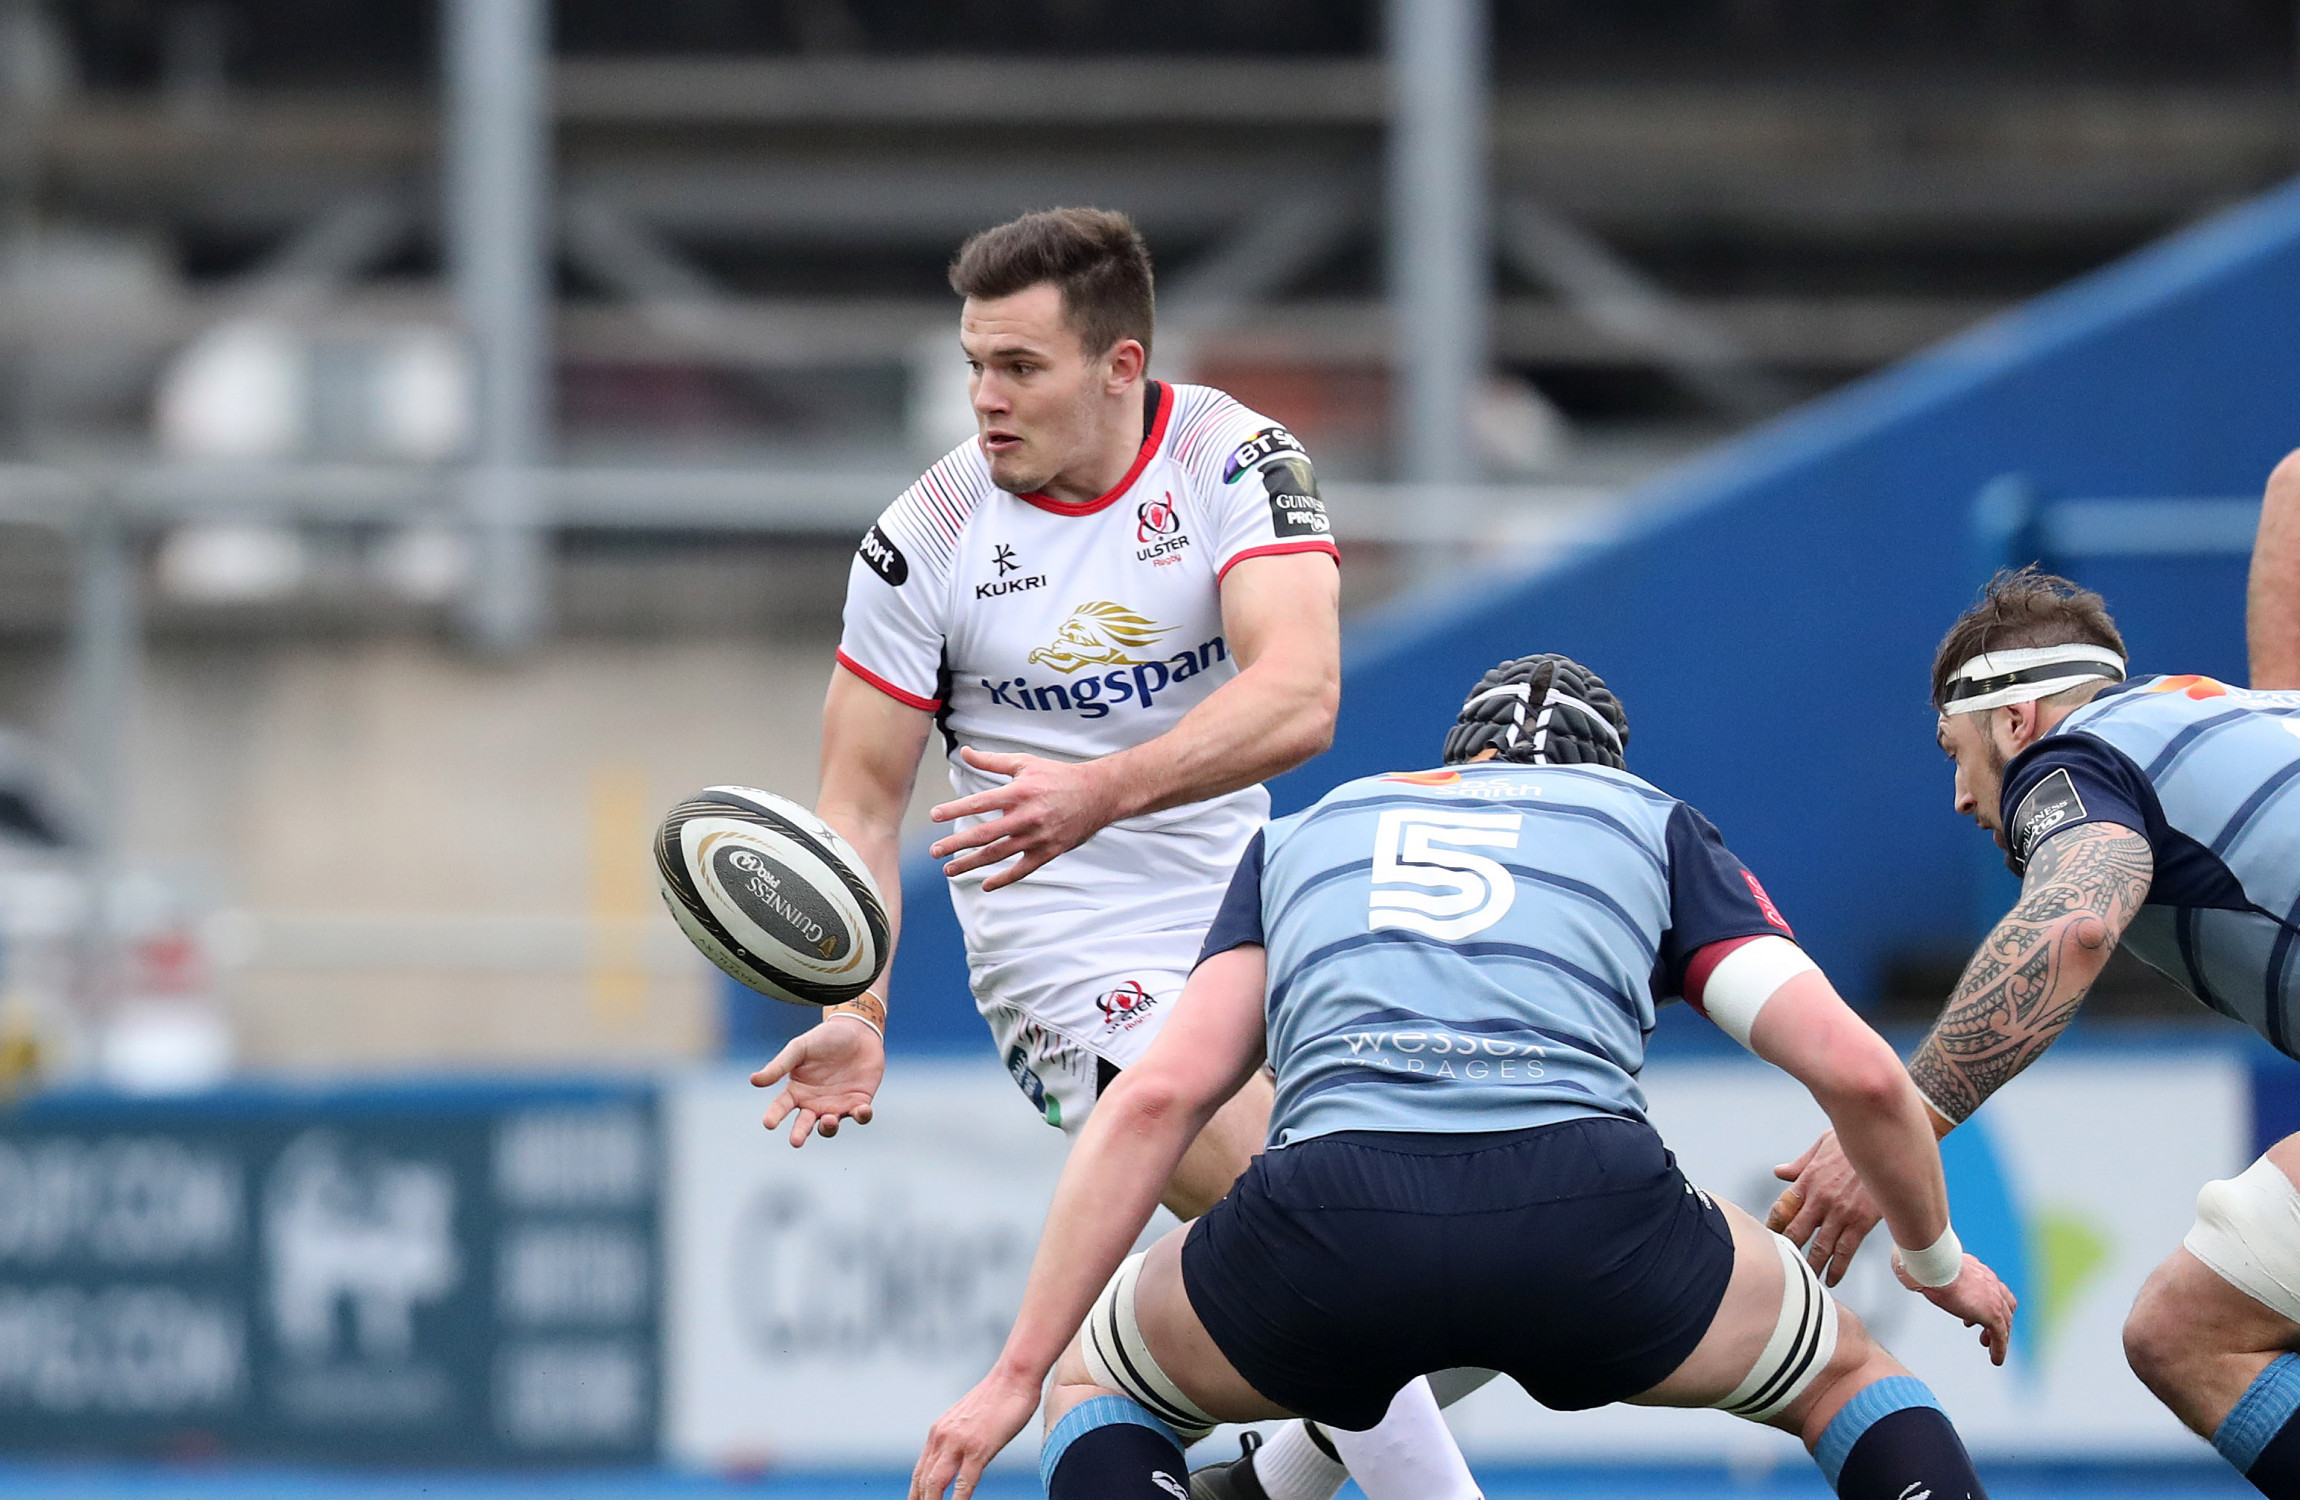 Ulster lose again despite return of Grand Slam stars